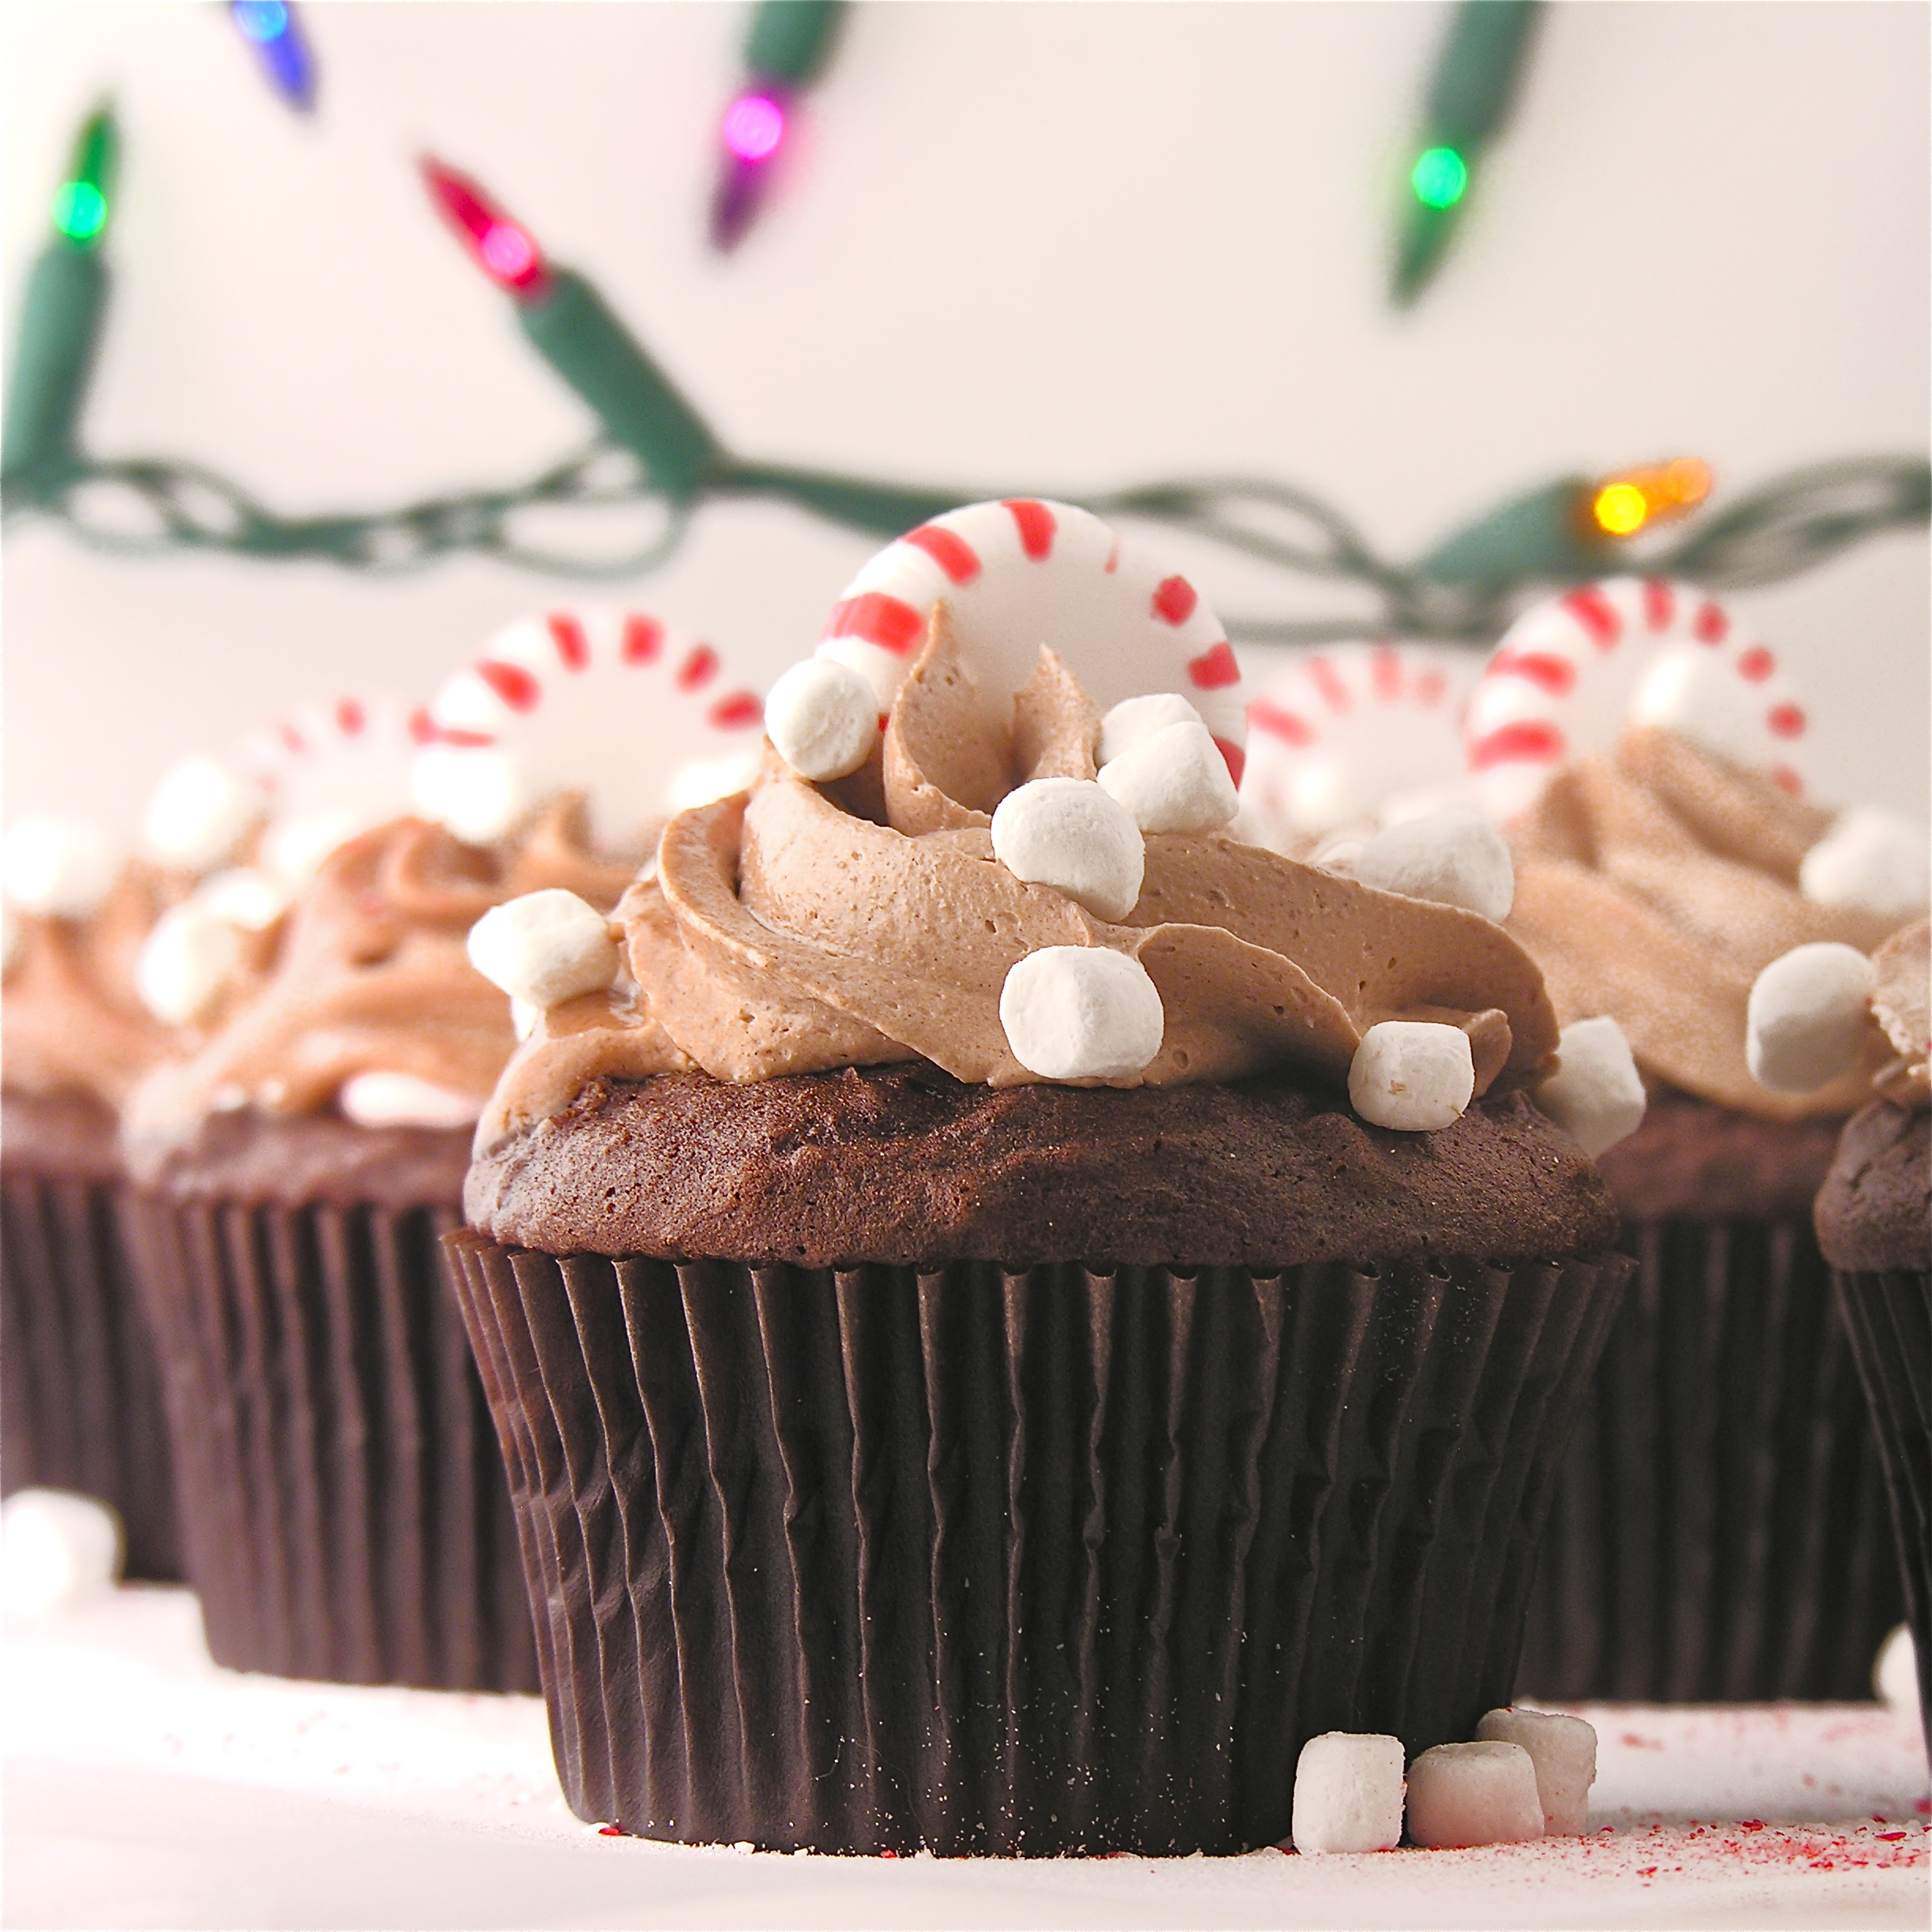 Peppermint Hot Chocolate Cupcakes | eASYbAKED